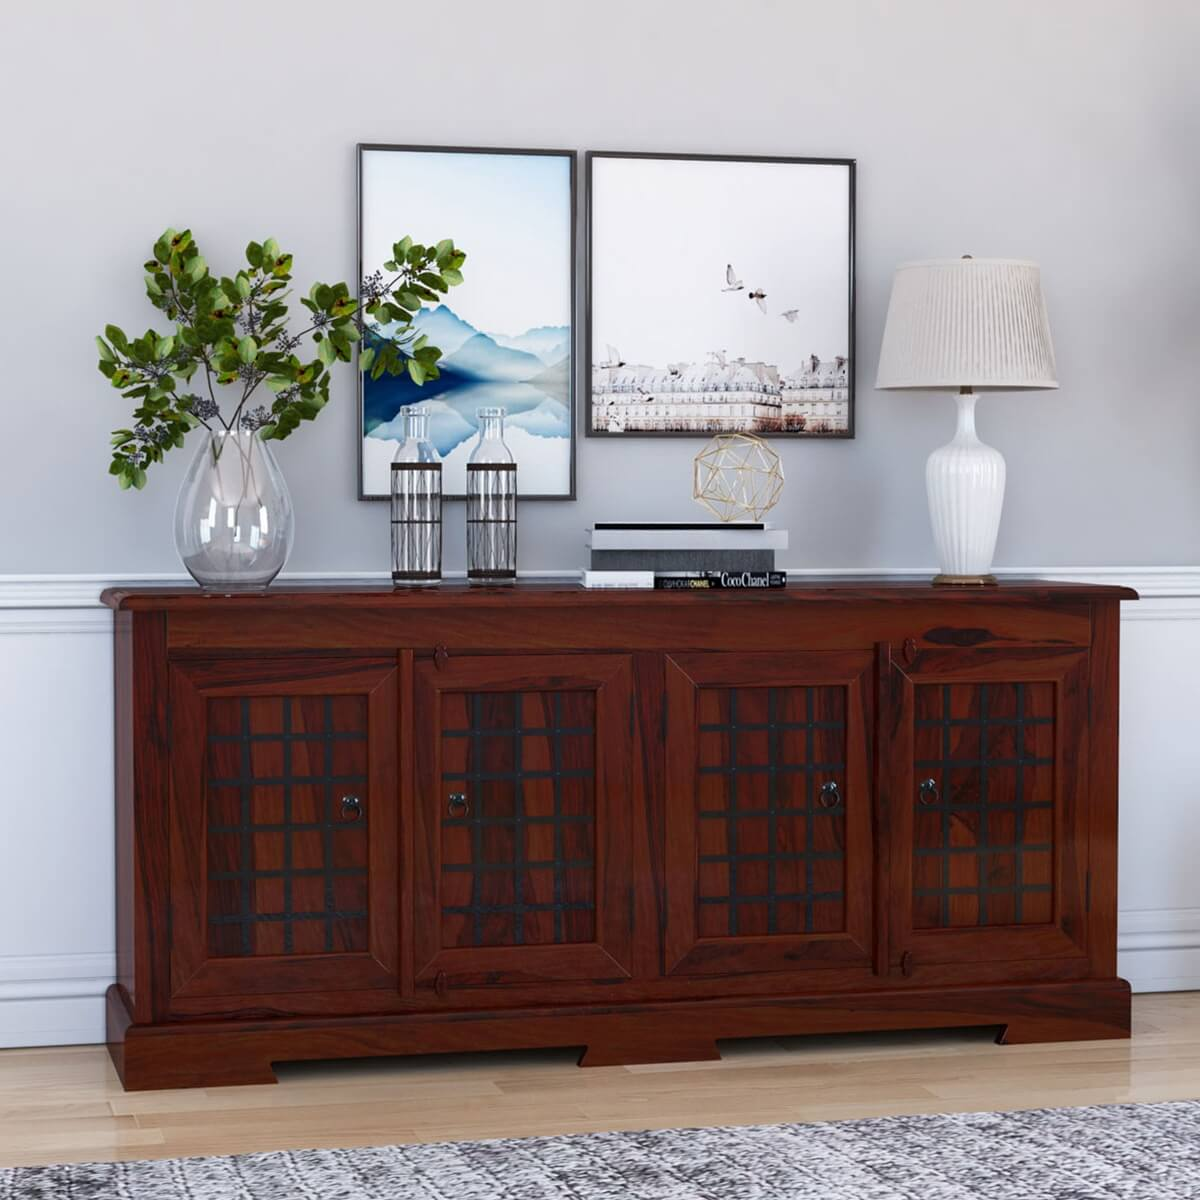 Sierra 4 Door Sideboard Solid Wood Buffet Cabinet w Wrought Iron